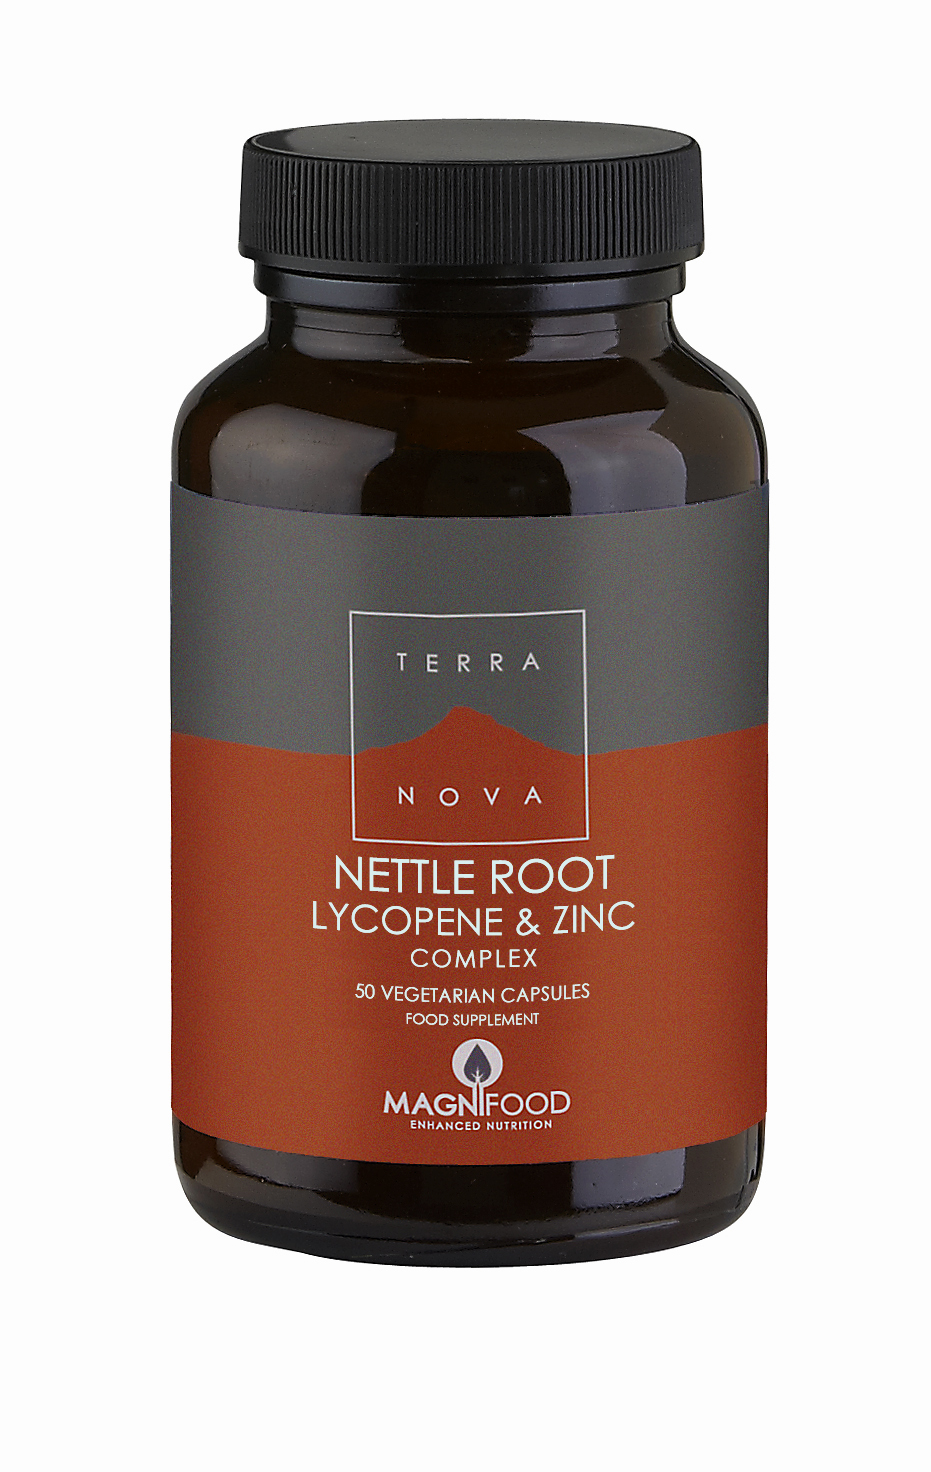 Nettle Root, Lycopene & Zinc Complex (Prostate Support Complex) 50's